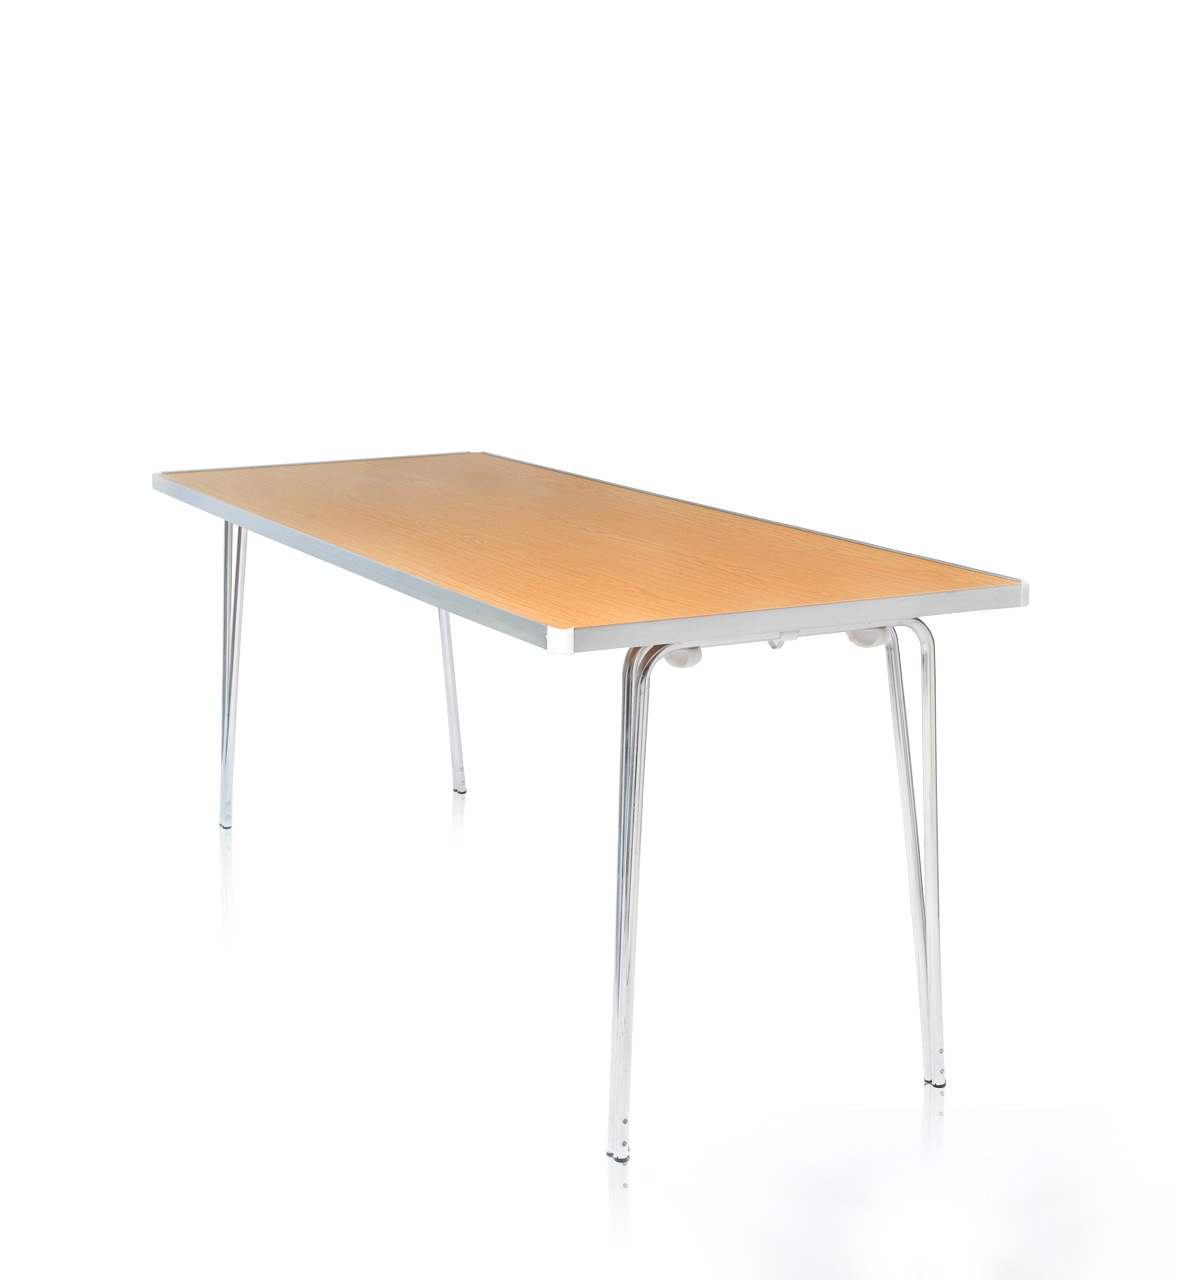 Gopak Economy Folding Table